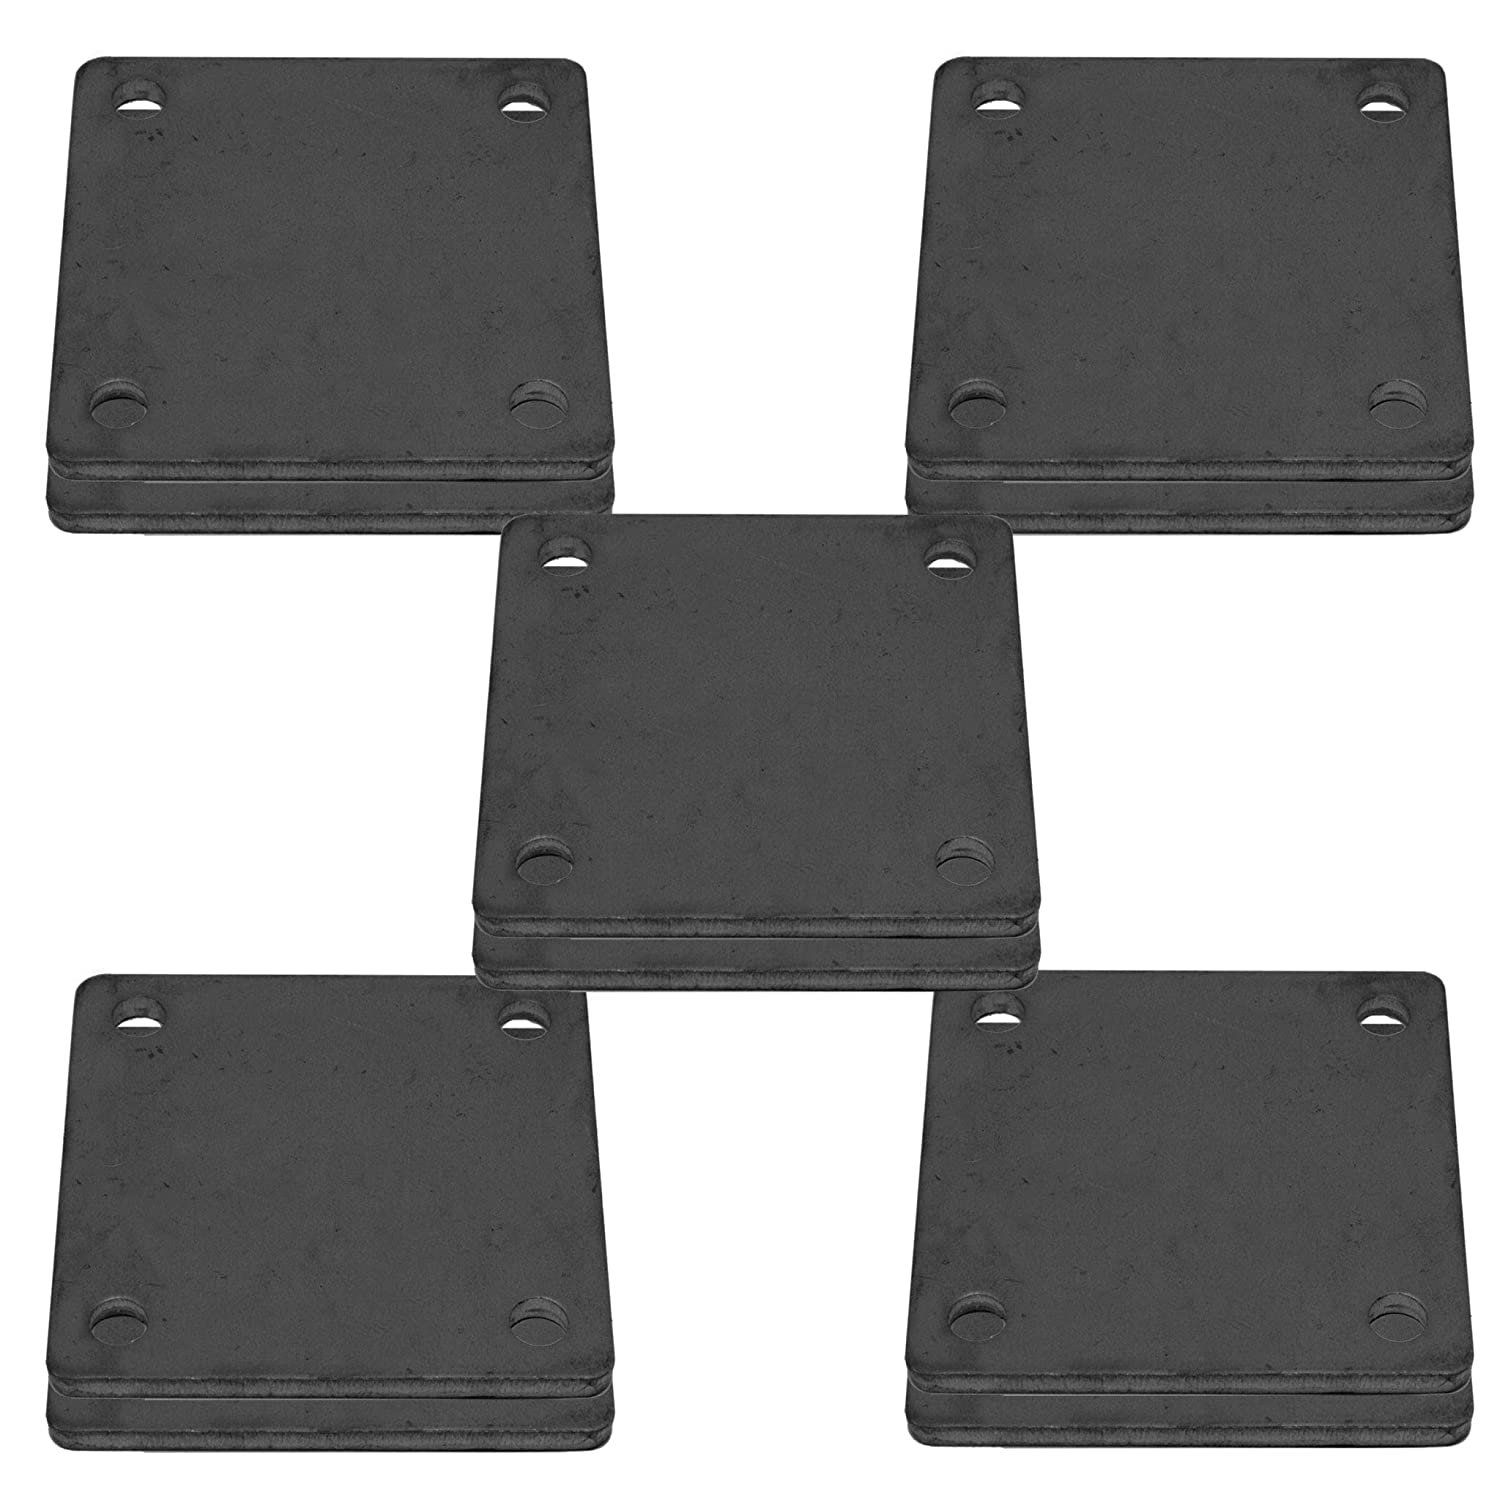 10 Pcs of Hot Rolled Steel Base Plate 3 X 3 with 4 Holes and Rounded Corners